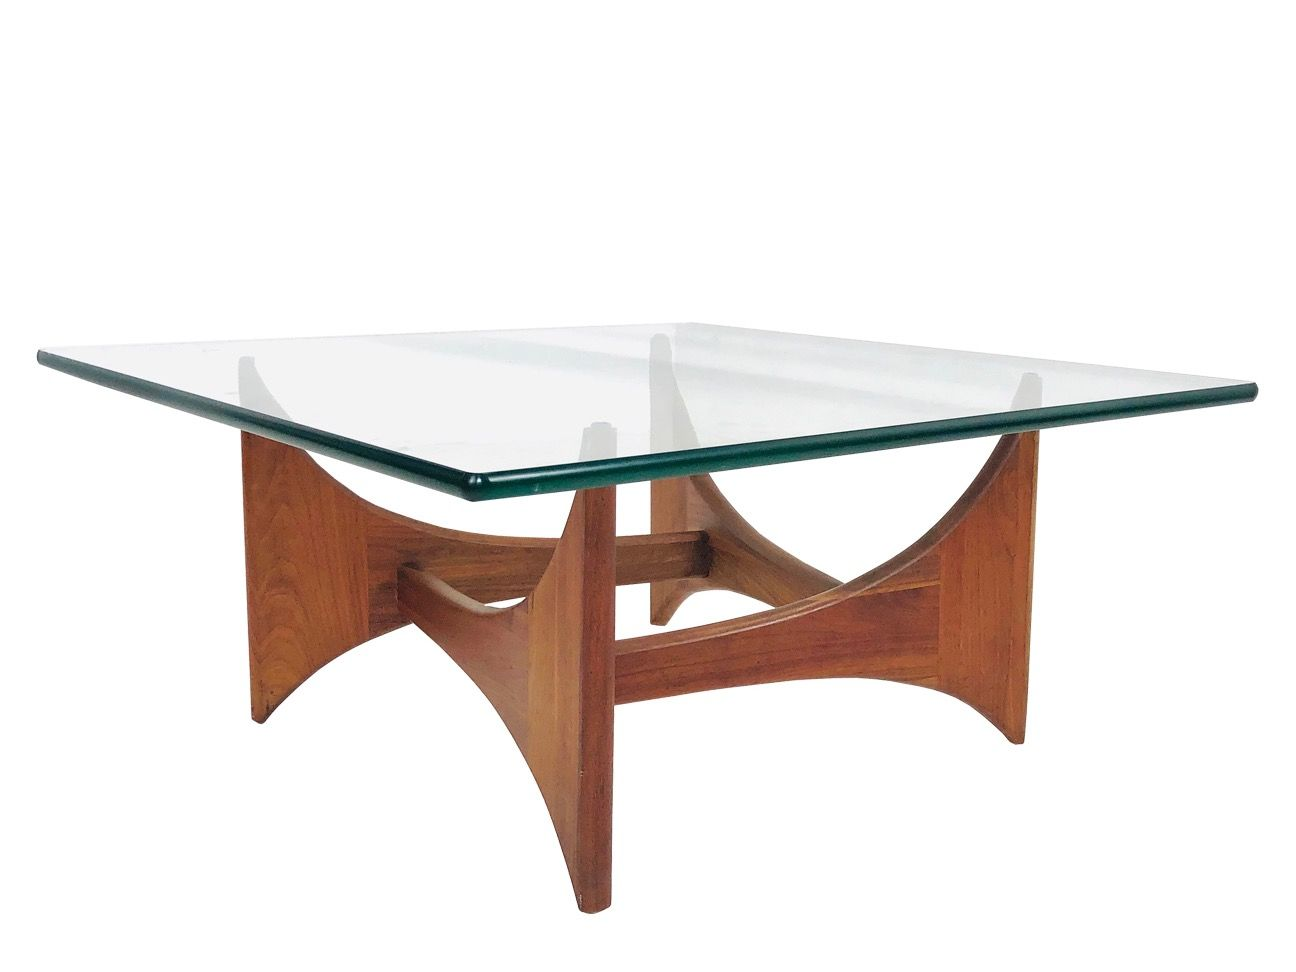 3904 Walnut Adrian Pearsall Square Coffee Table For Craft Coffee